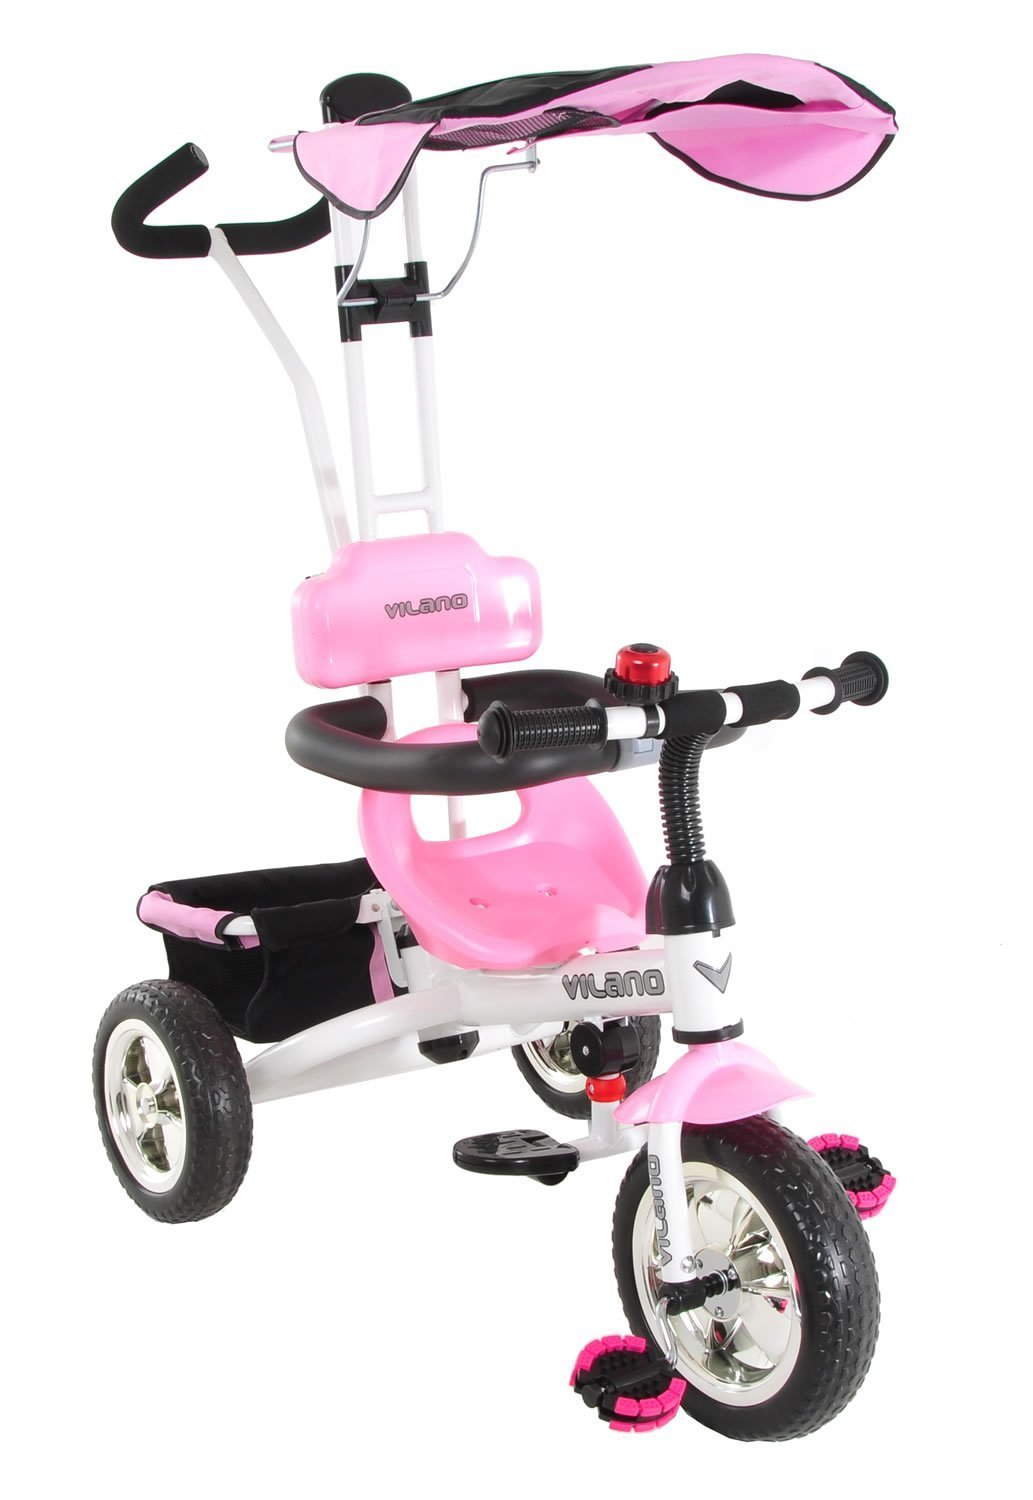 The Vilano 3 in 1 Tricycle and Learn to Ride Trike for toddlers for boys and girls